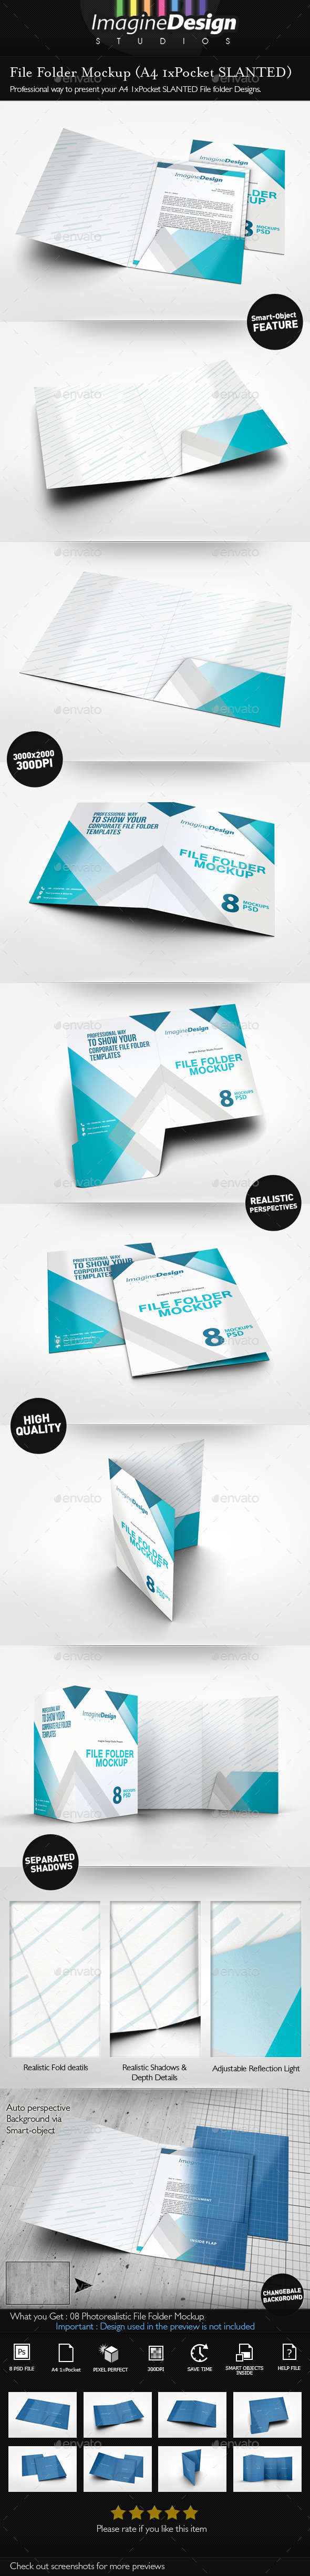 File Folder Mockup - Stationery Print